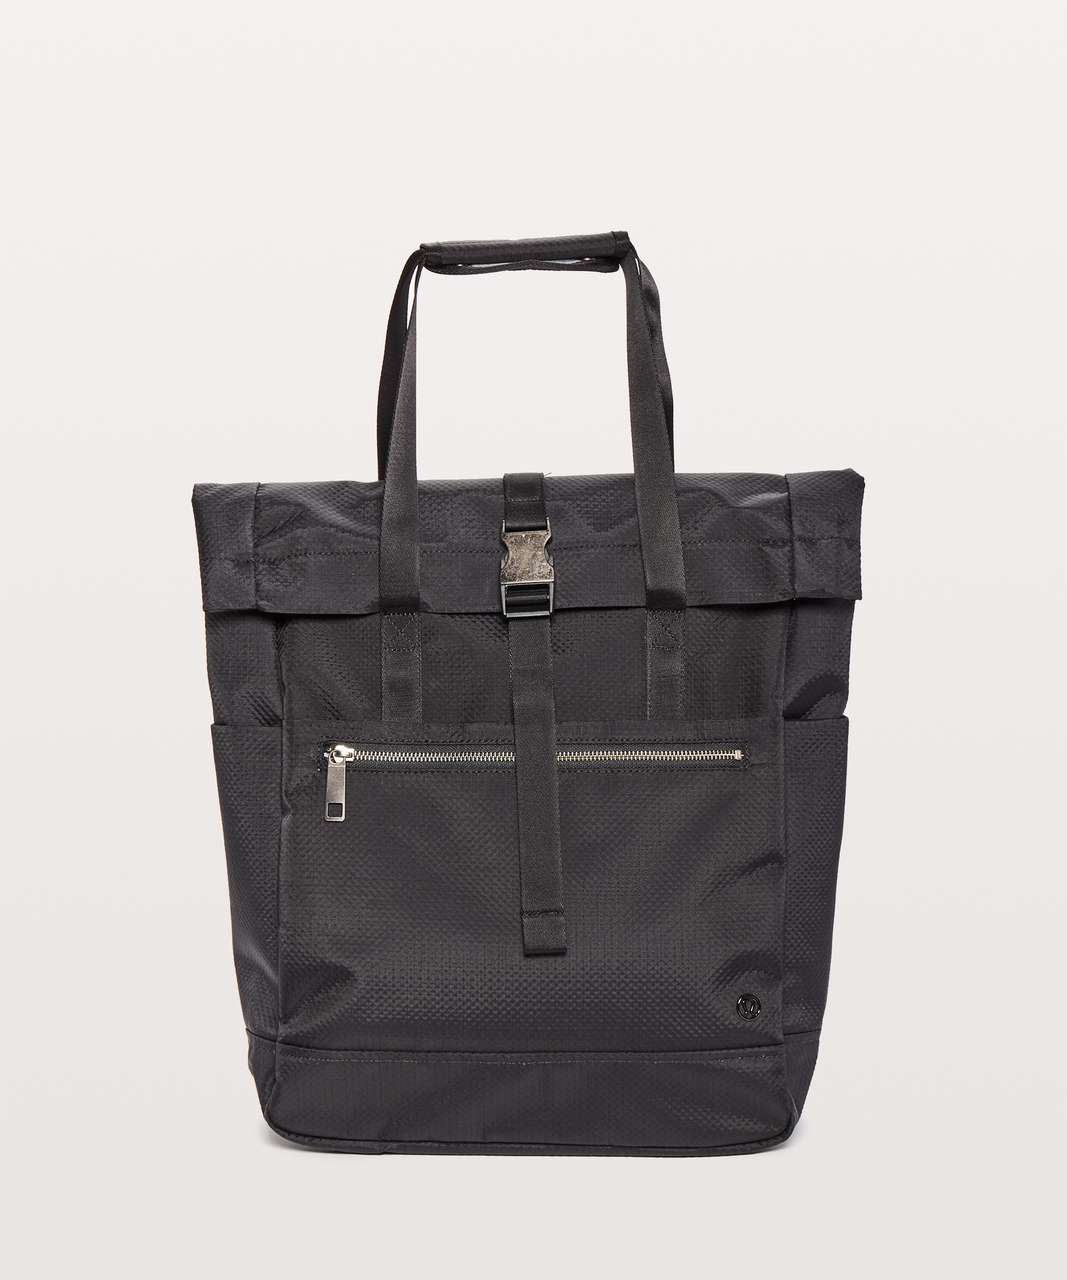 Lululemon One Trek Mind Tote - Black